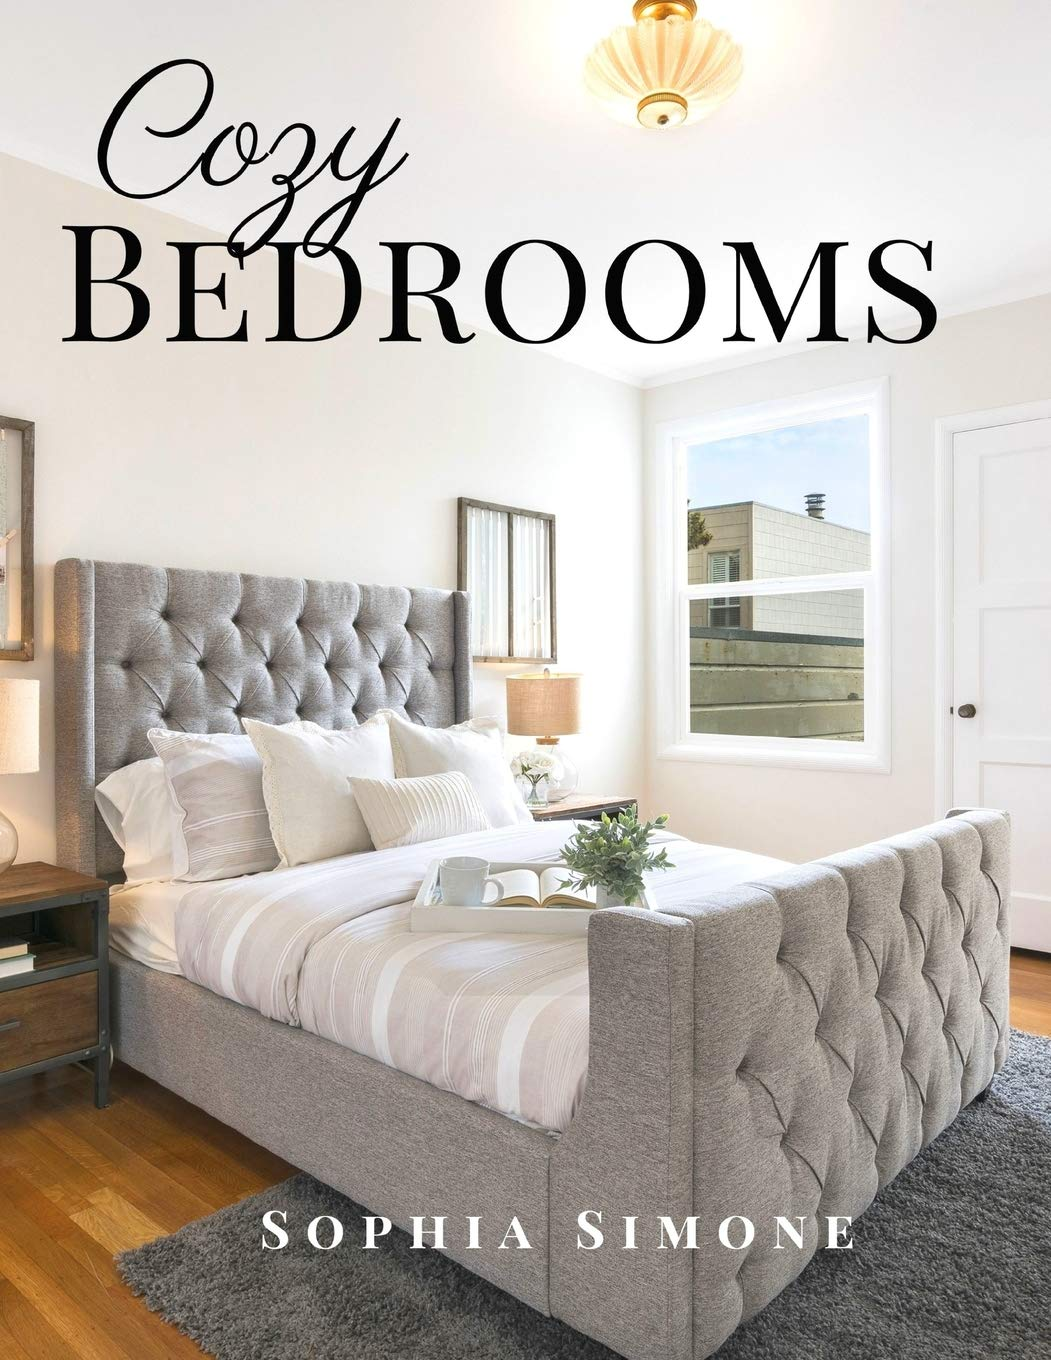 Cozy Bedrooms: A Beautiful Modern Architecture Interior Décor Minimalist Picture Book Indoor Photography Coffee Table Photobook Home Design Guide Book ... Images of Luxury Ultra-Modern Bed Rooms.